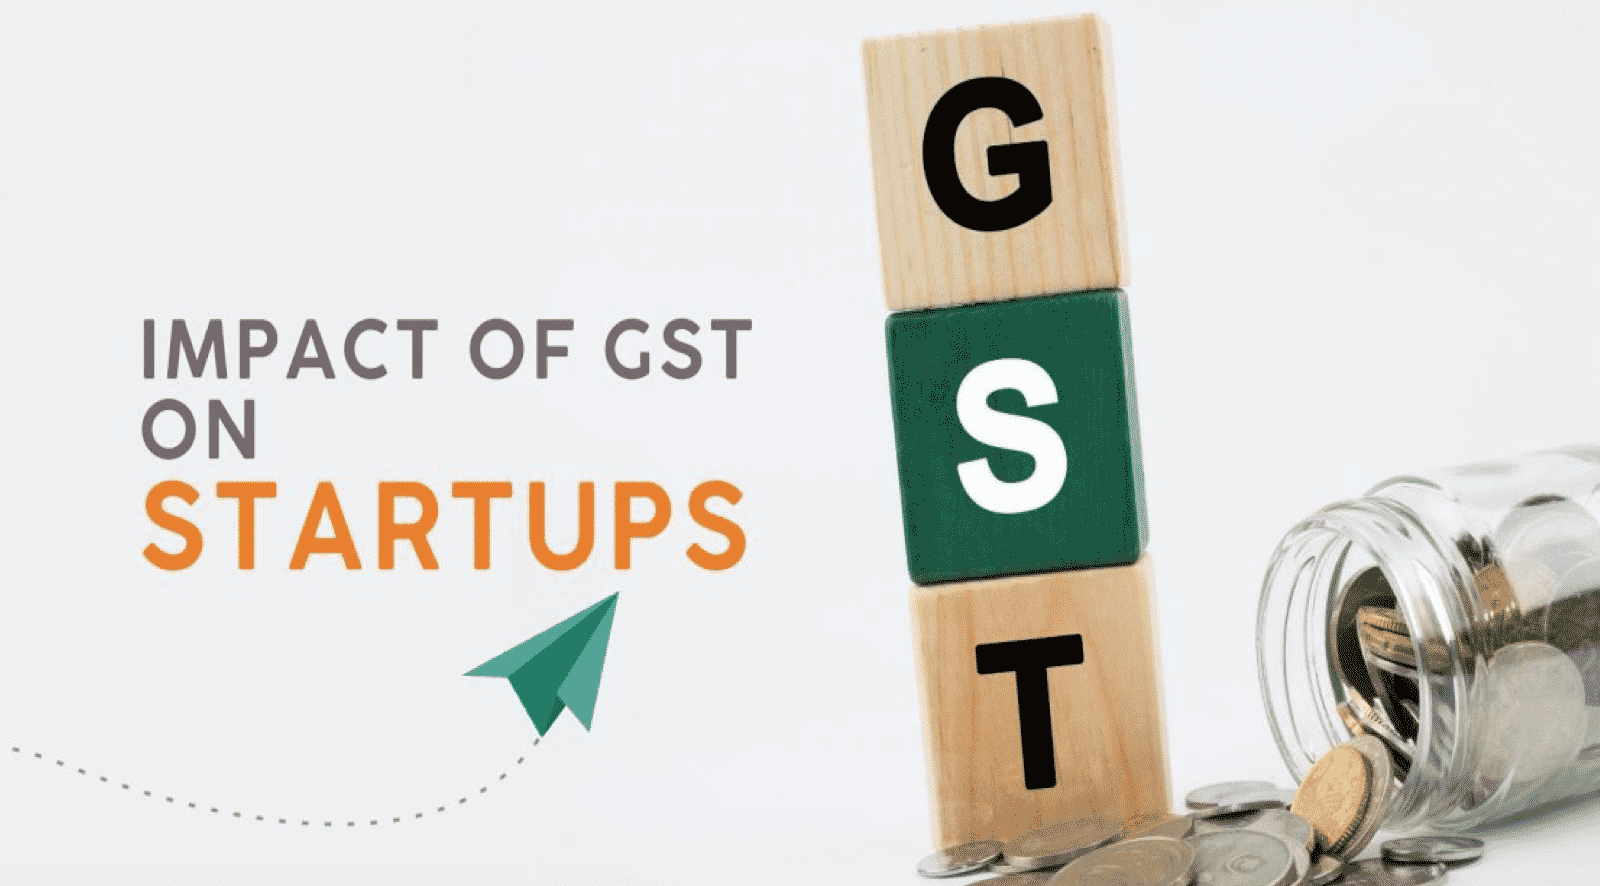 How Did GST Impact Startups?